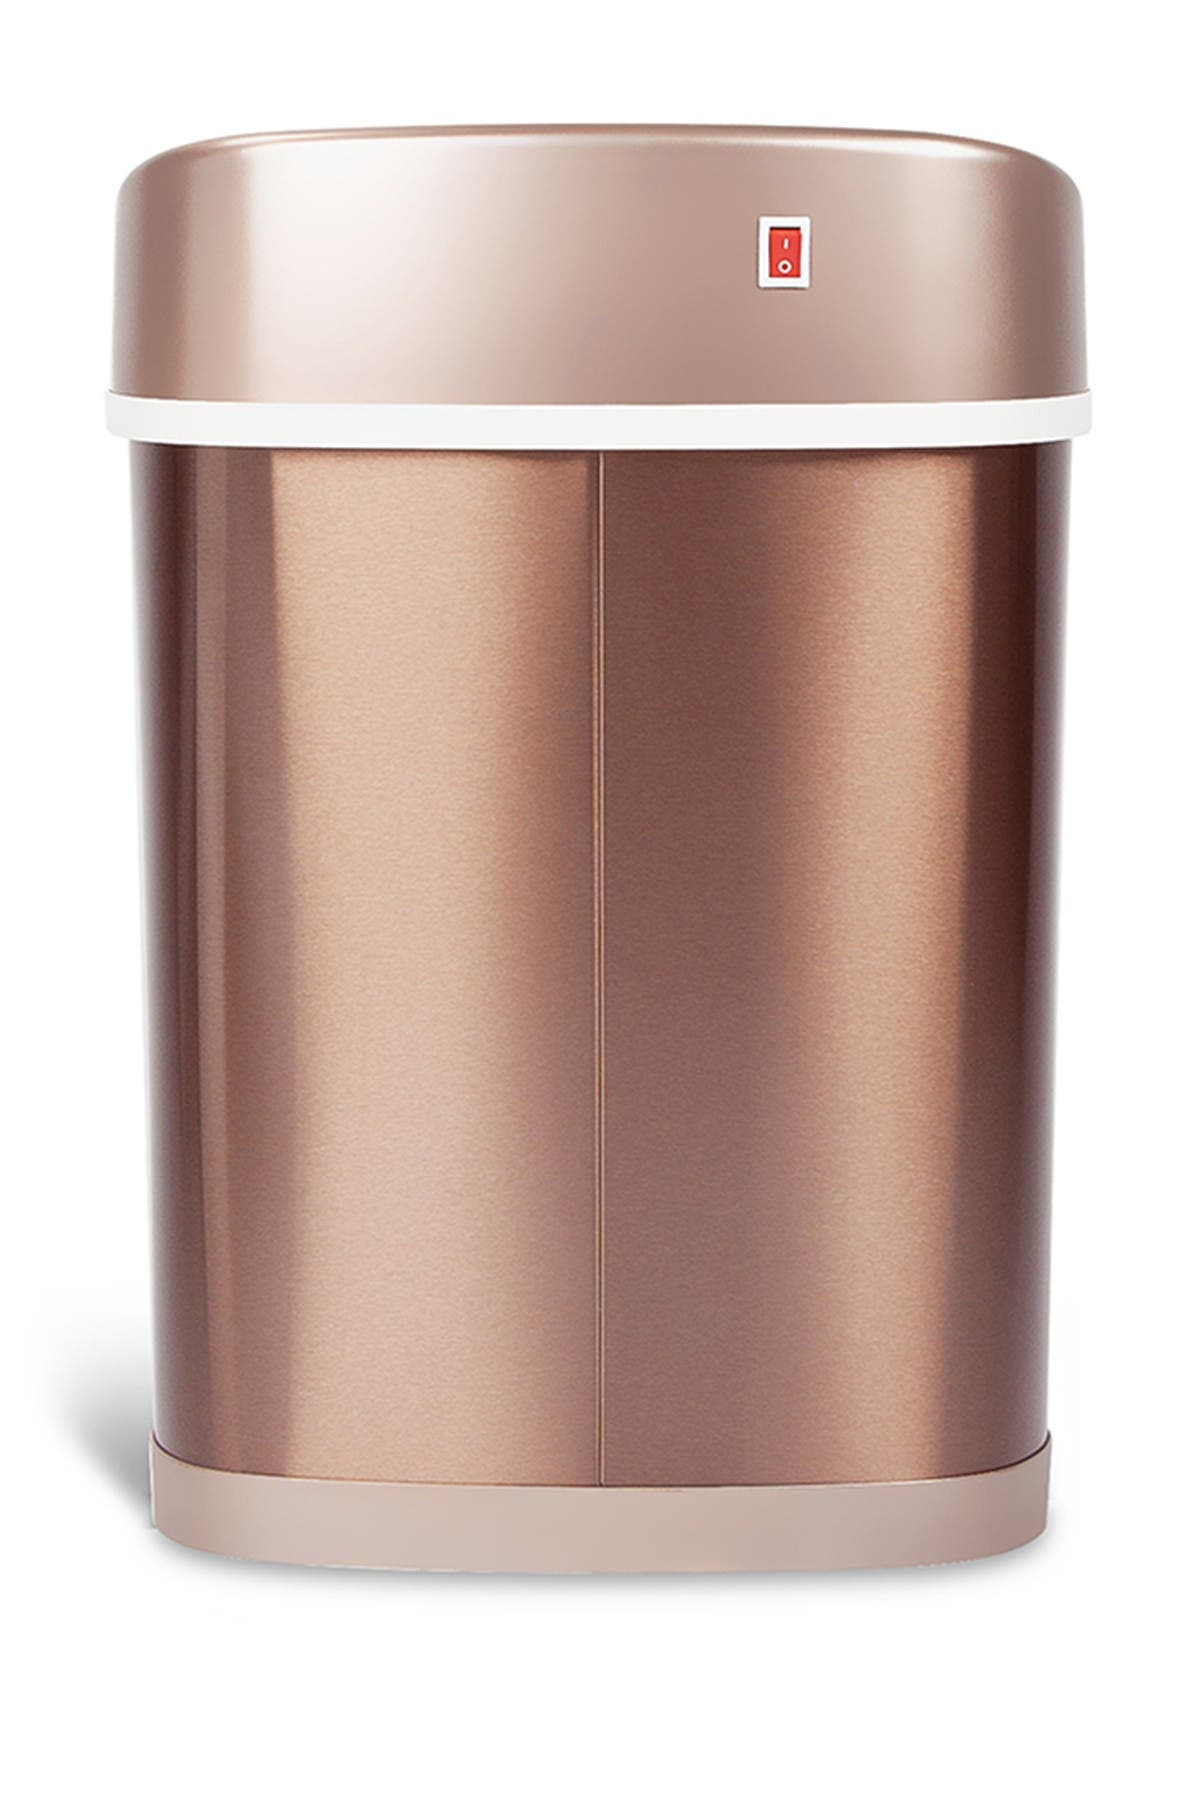 Image of NINESTARS Gold Stainless Steel Motion Sensor Recycle Bin - 18.5 Gallons